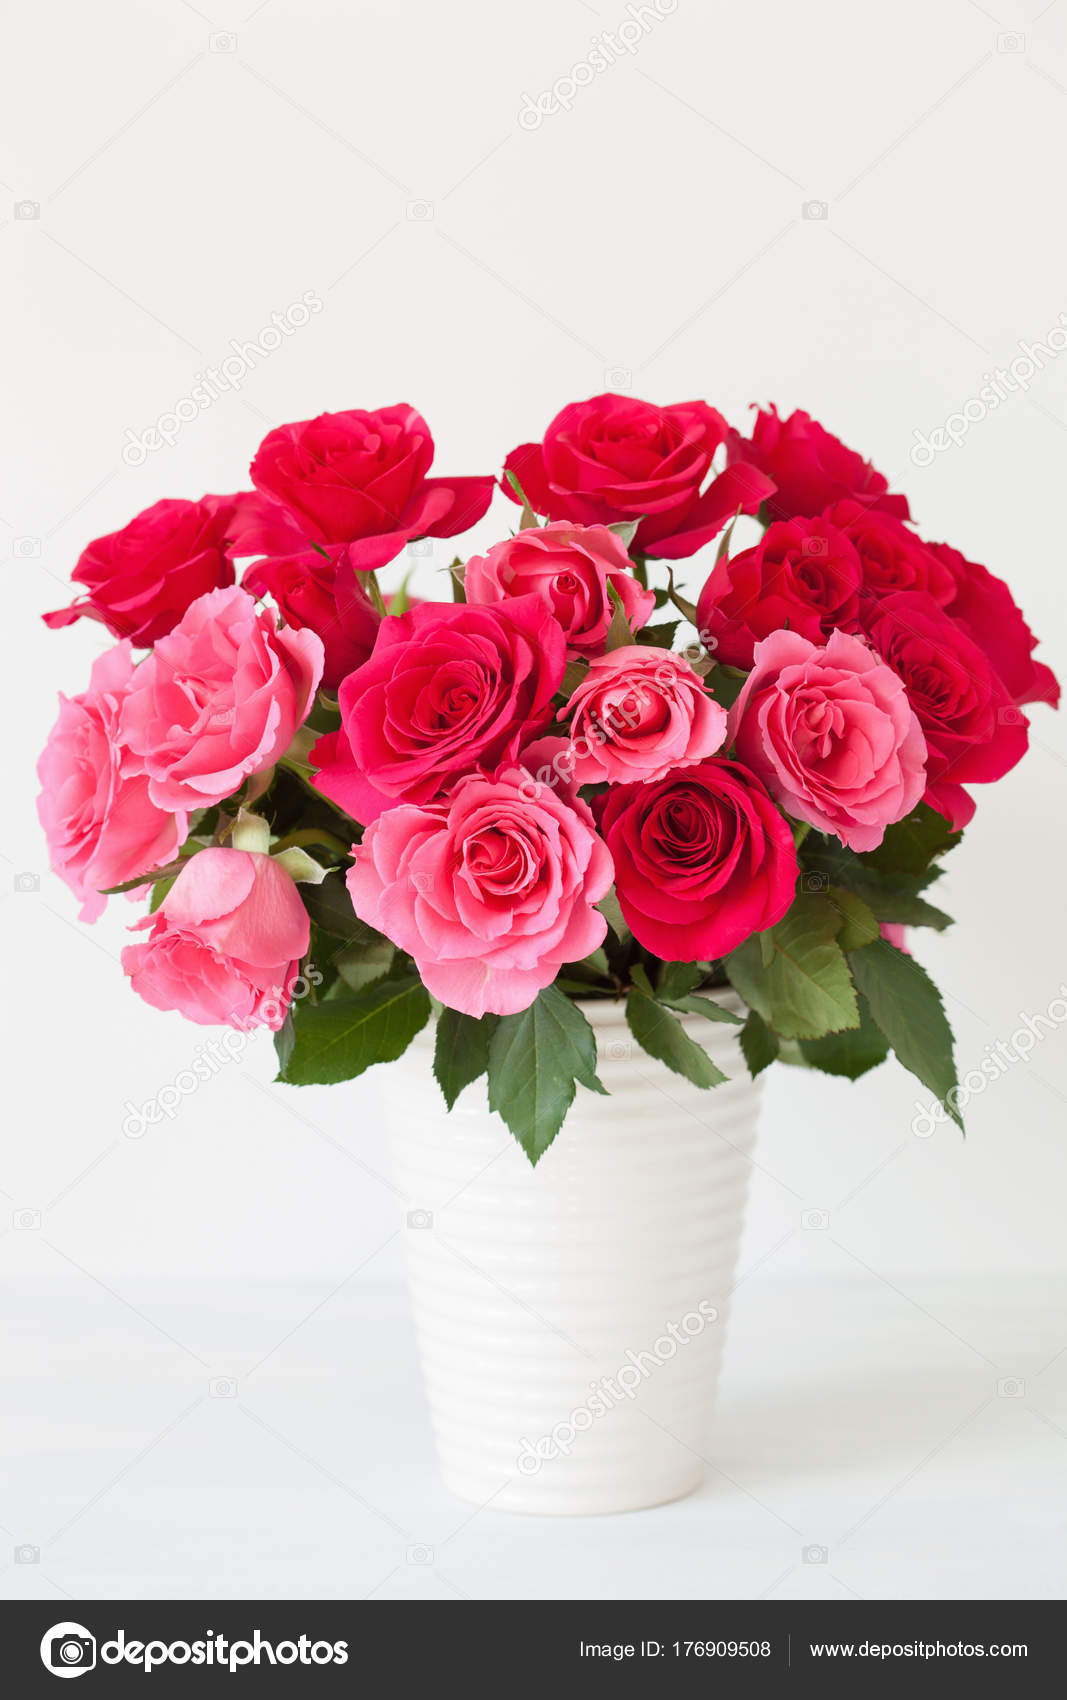 Beautiful red rose flowers bouquet in vase over white stock photo beautiful red rose flowers bouquet in vase over white photo by duskbabe izmirmasajfo